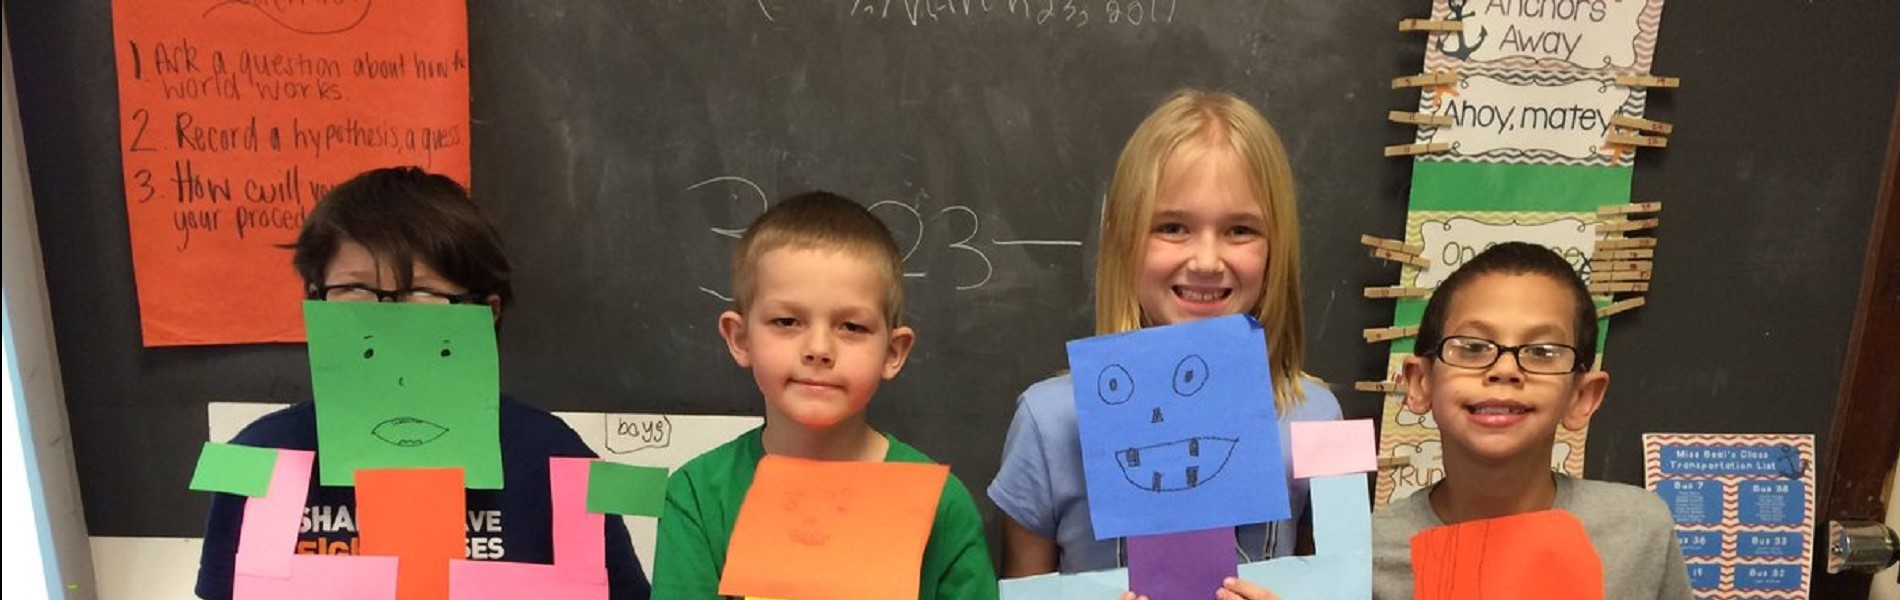 2nd grade measurement robots